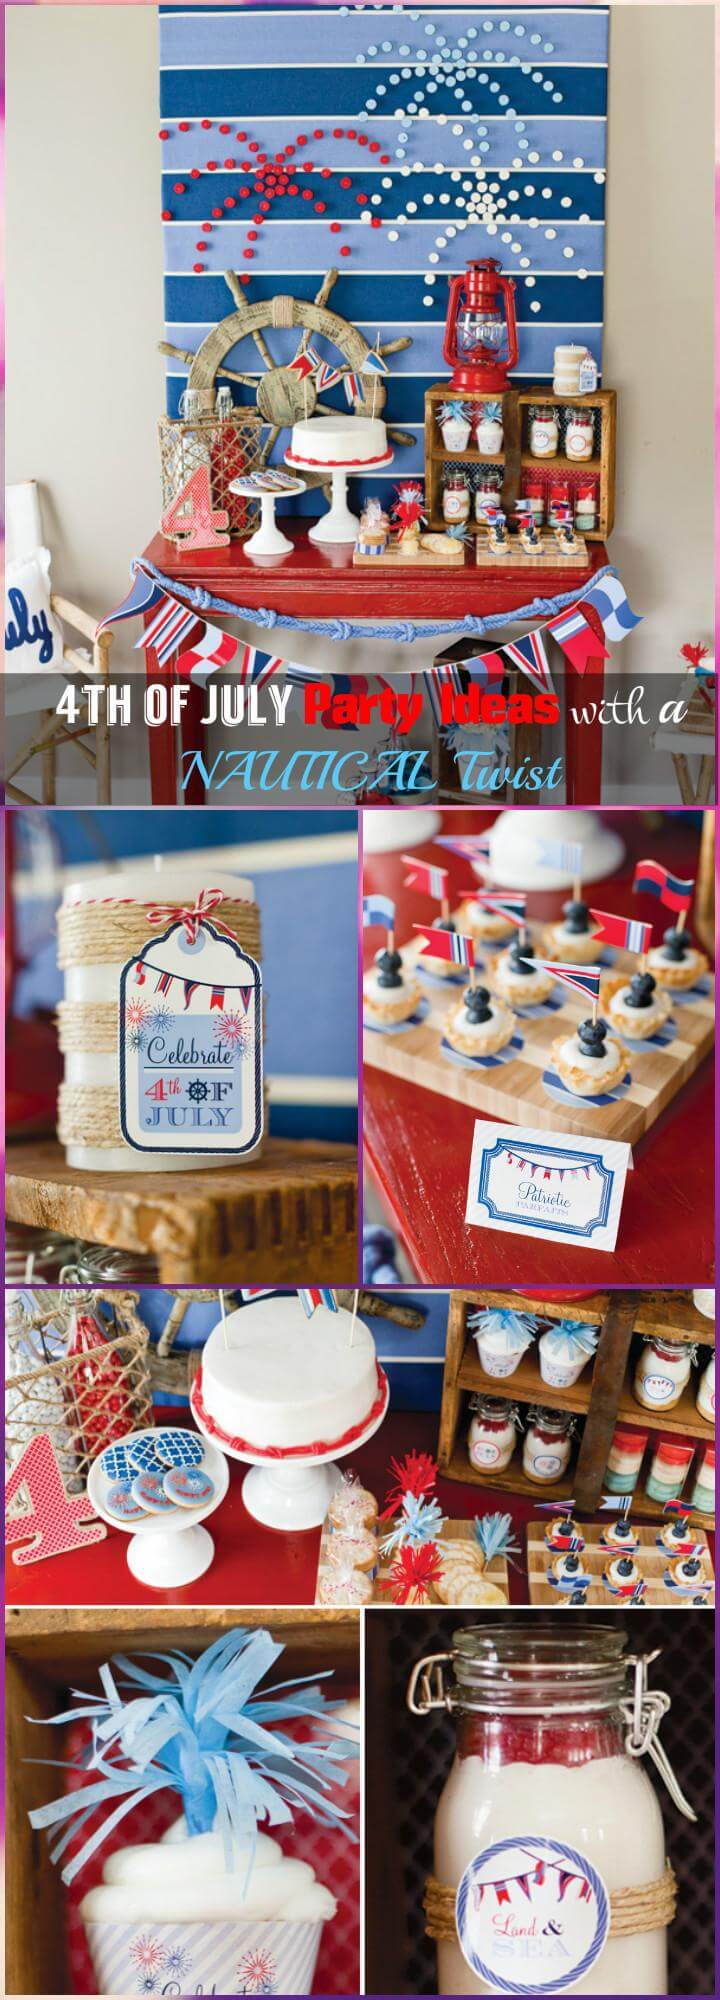 30 diy 4th of july decorations patriotic diy fourth of for 4 of july decorations